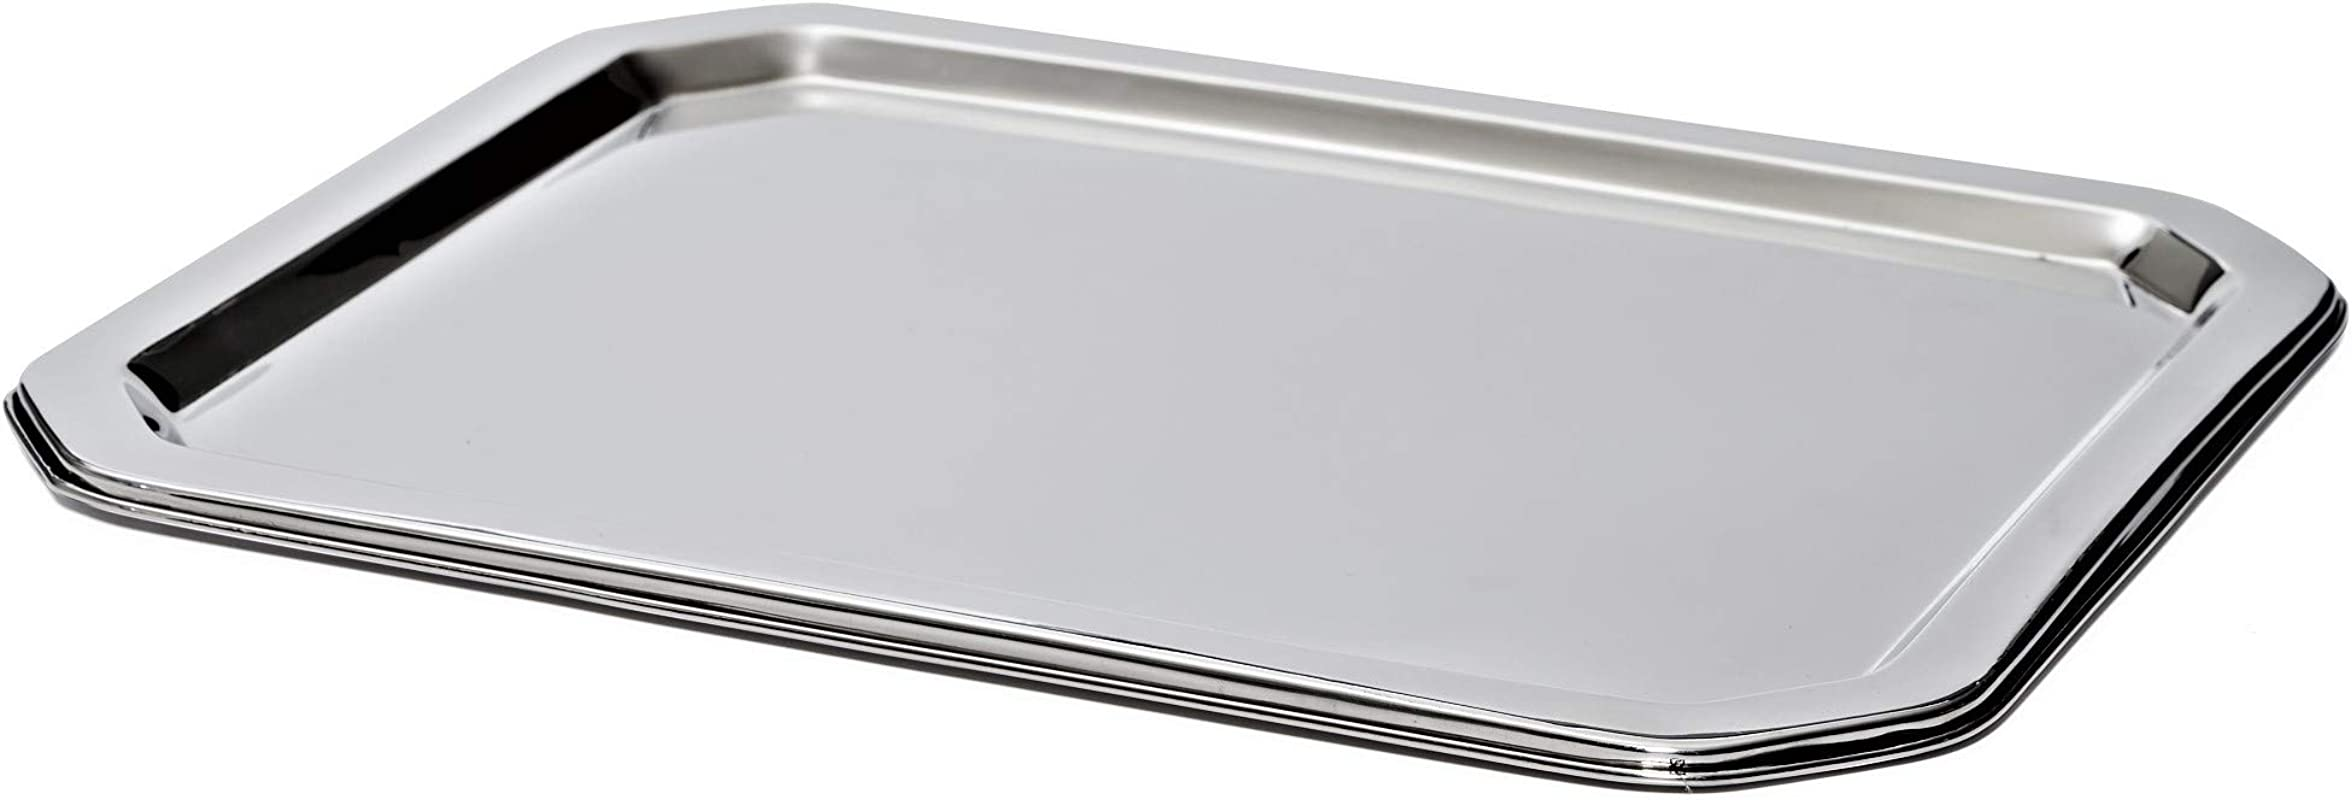 Bezrat Stainless Steel Food Serving Tray Rectangular Decorative Mirrored Serveware Platter Medium 15 X 12